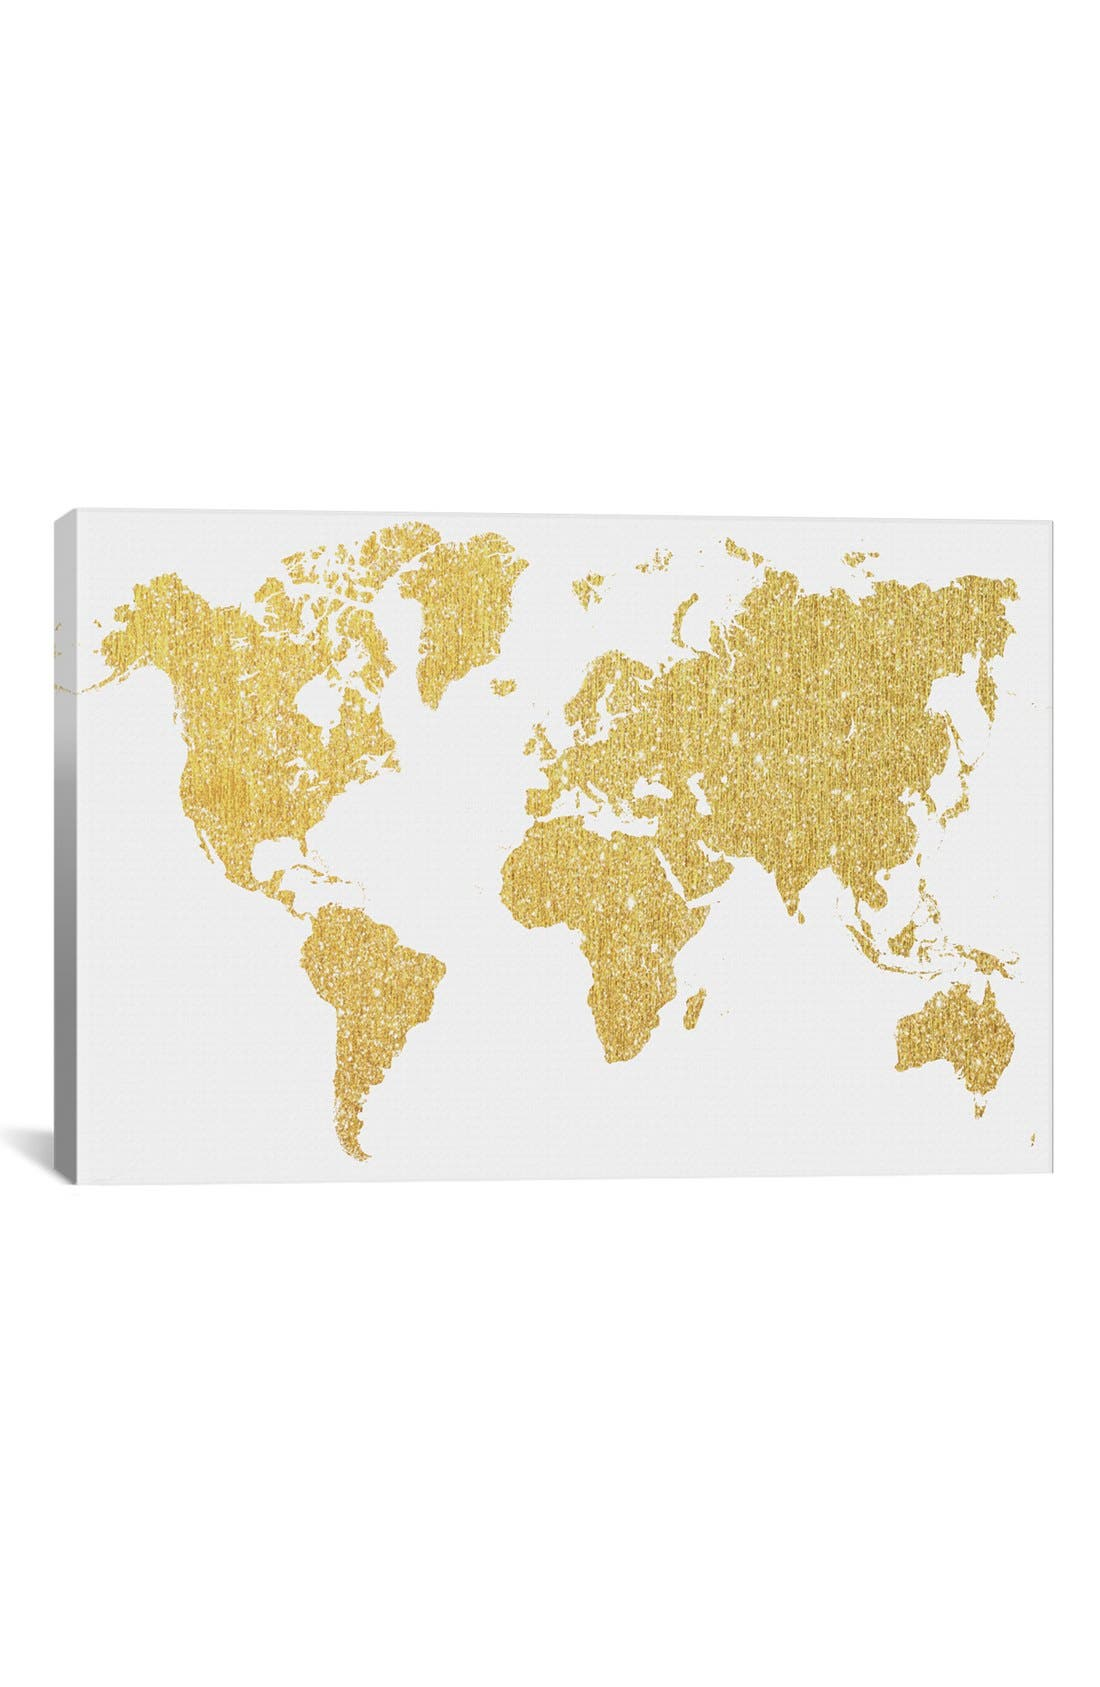 'Gold Map' Giclée Print Canvas Art,                             Main thumbnail 1, color,                             710